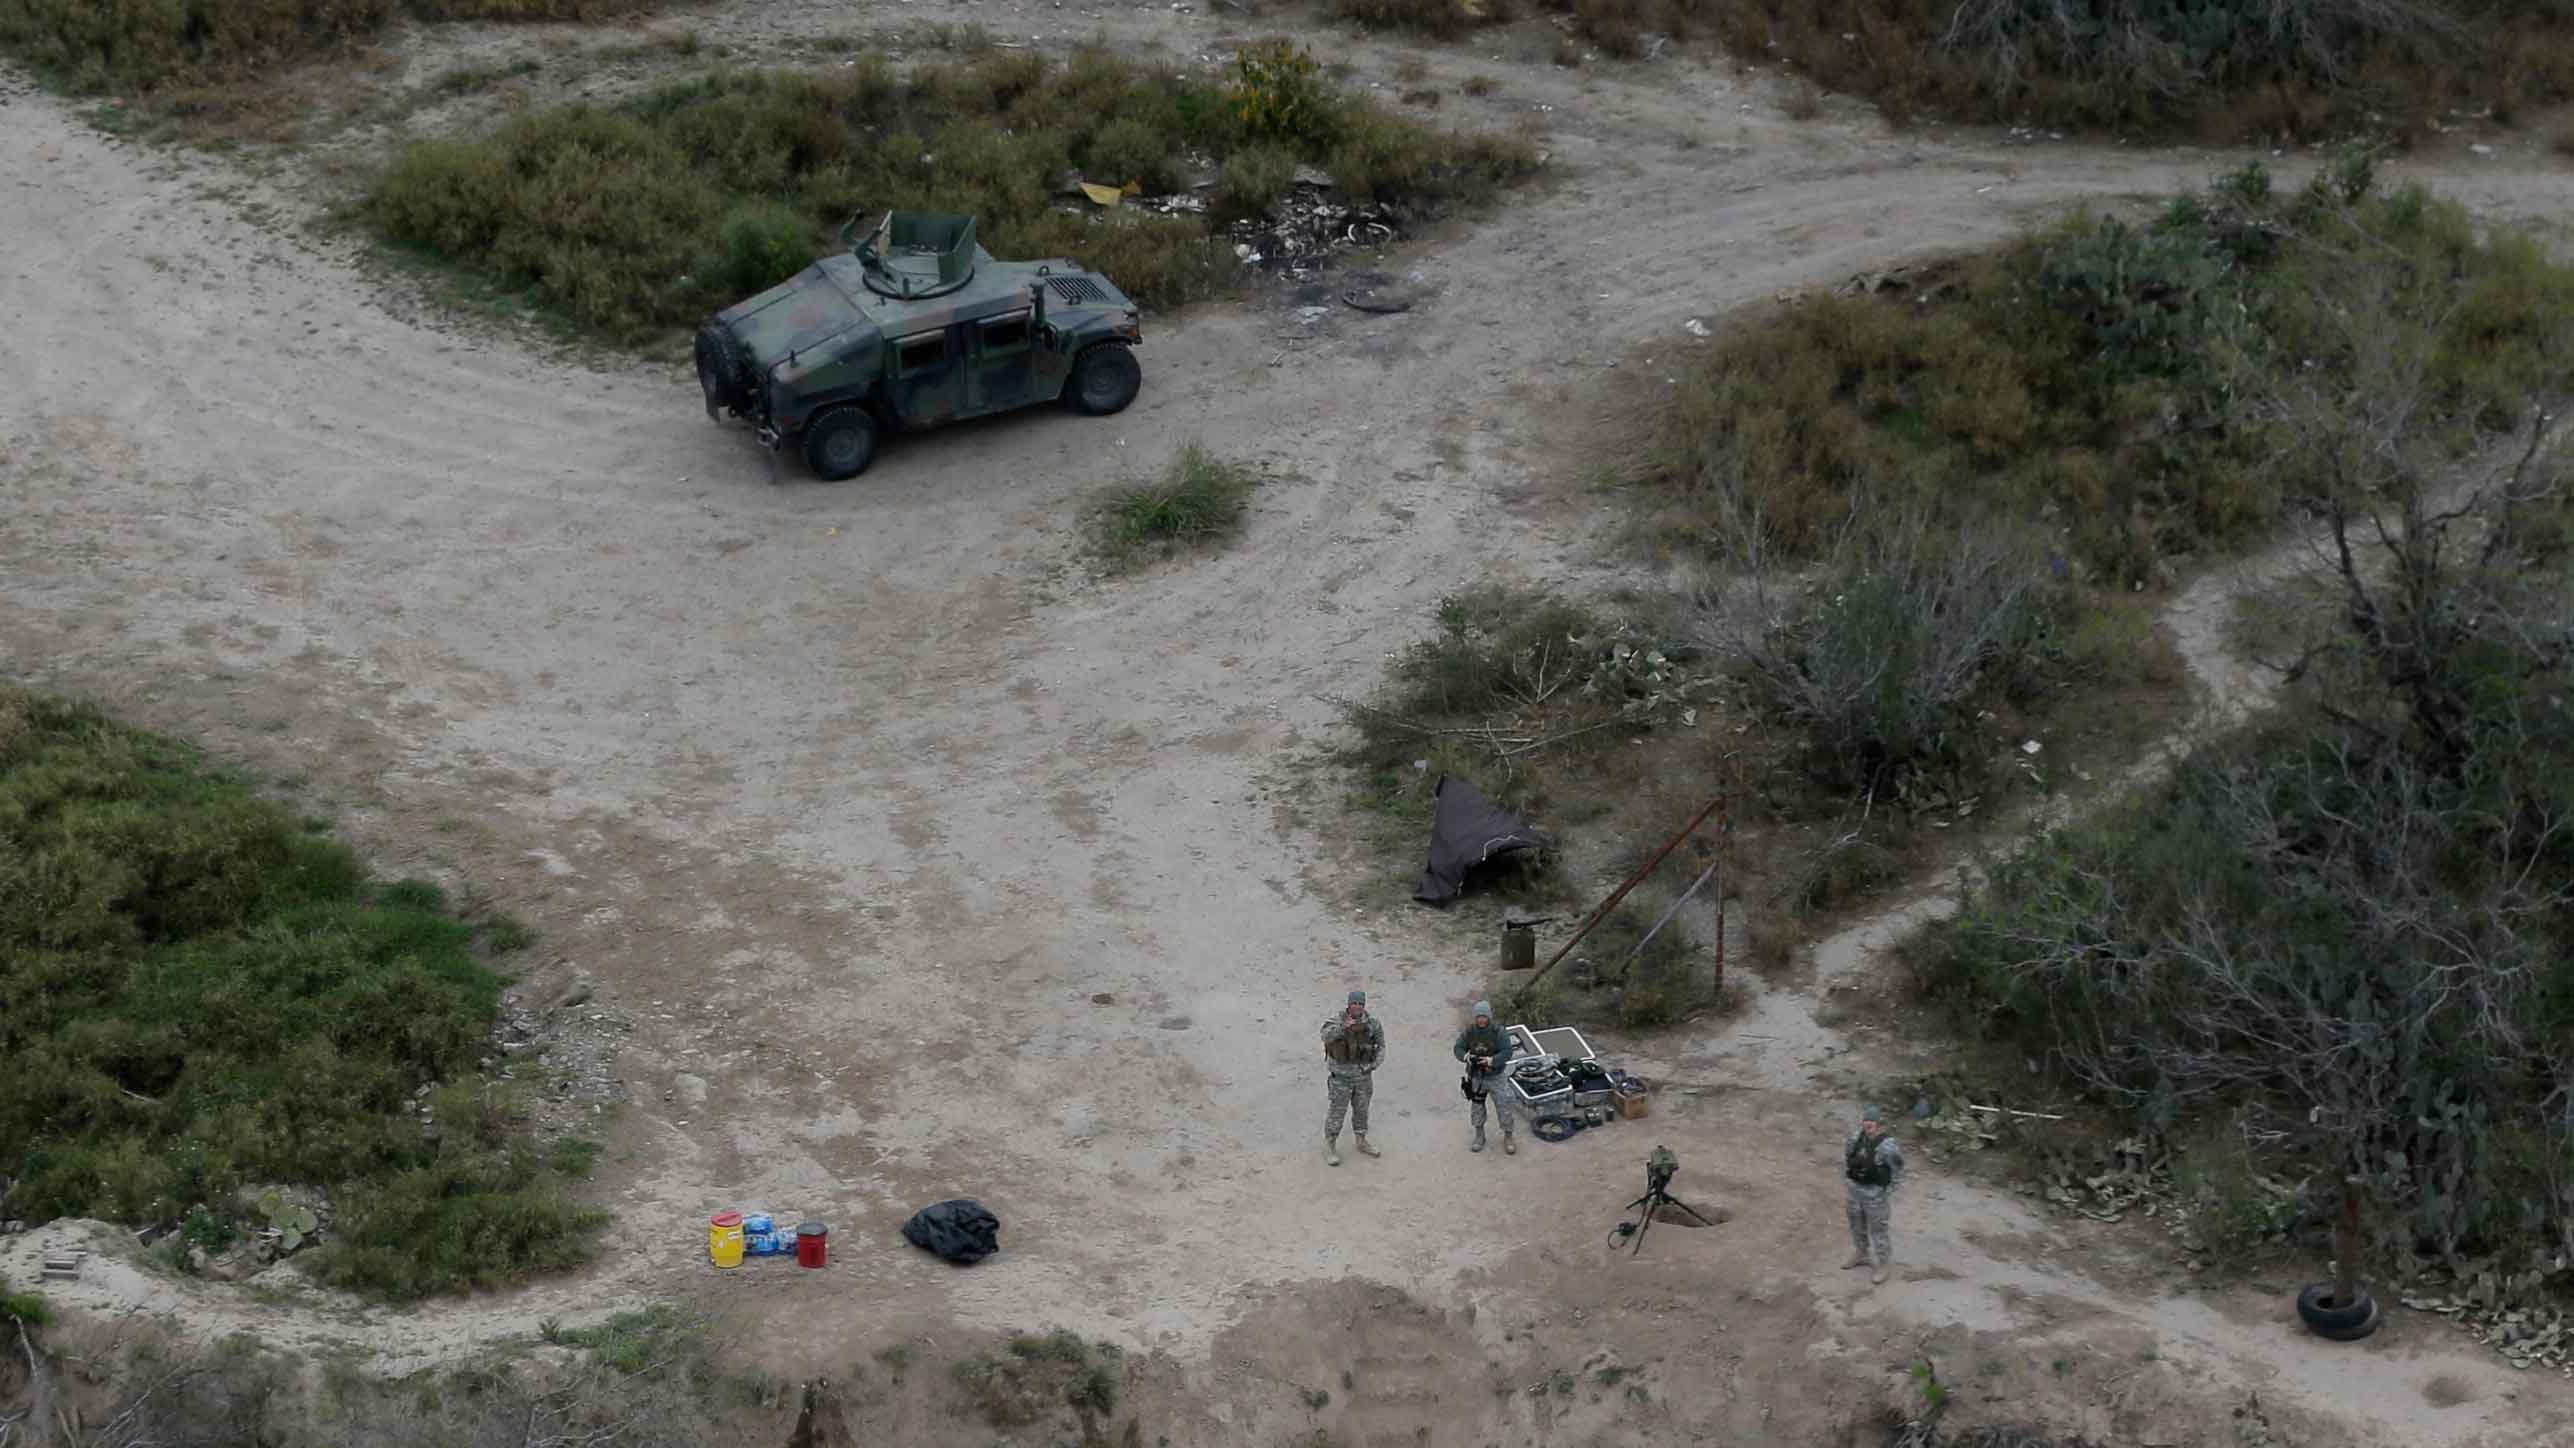 Members of the National Guard patrol along the Rio Grande at the Texas-Mexico border, Tuesday, Feb. 24, 2015, in Rio Grande City, Texas. (Source: AP Photo/Eric Gay)